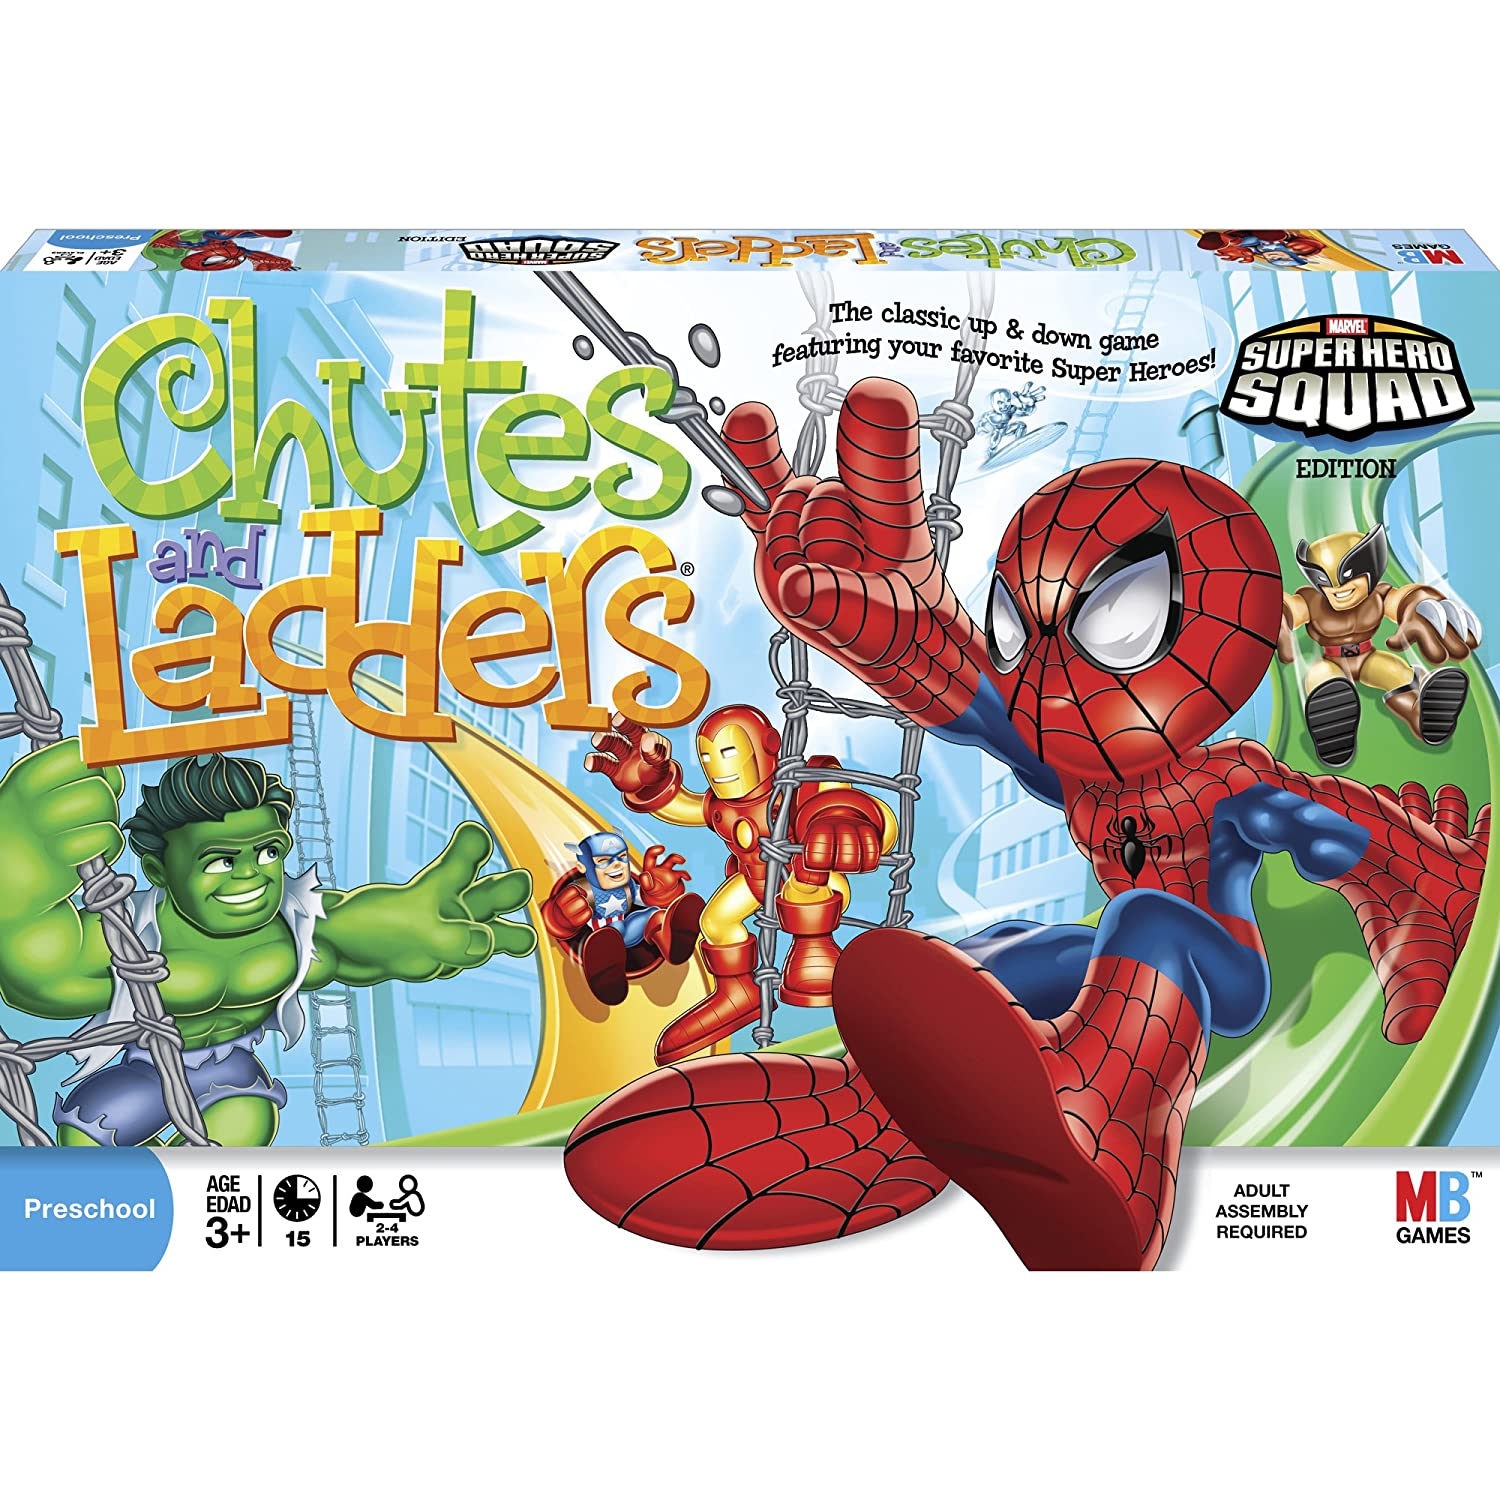 Super Hero Toys For Boys : Best gifts for year old boys in itsy bitsy fun